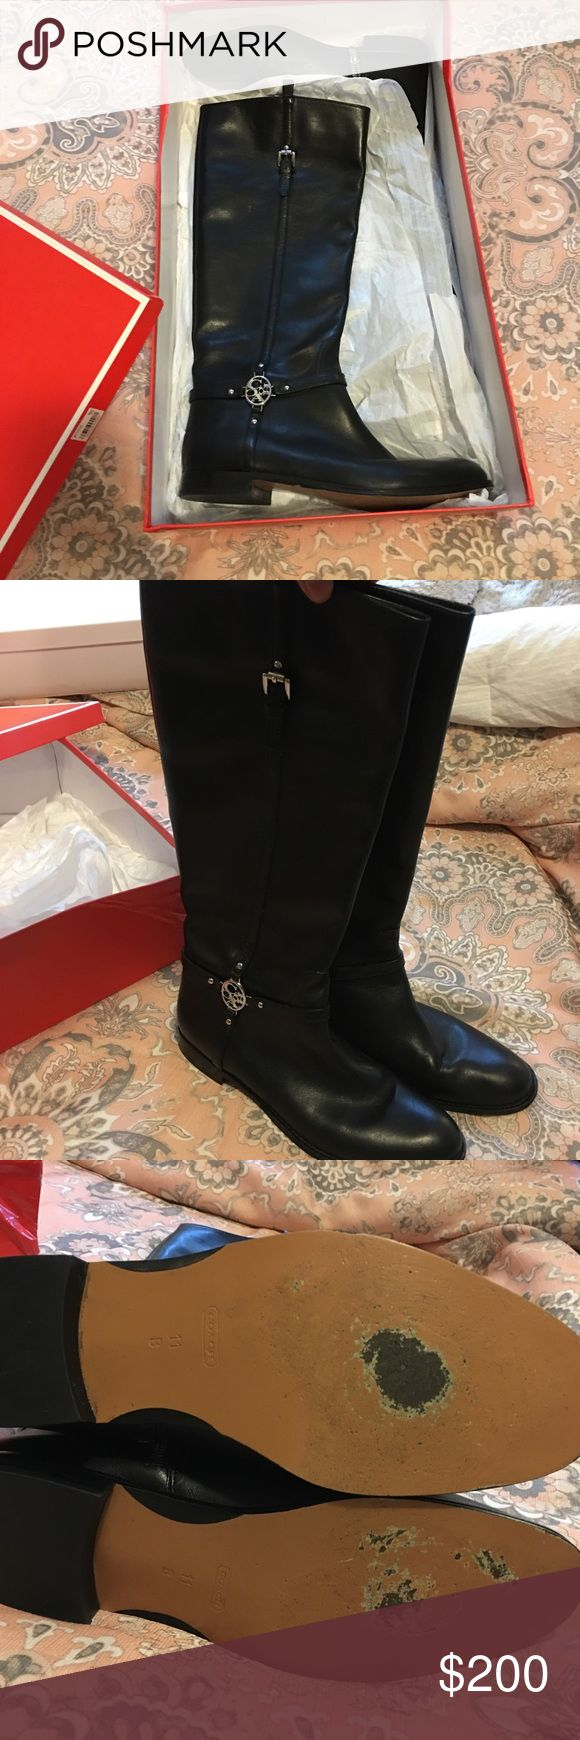 COACHLEATHER RIDING BOOTS COACH Black leather riding boot. Excellent condition. Worn once. Knee high. Offers and questions welcome.EXCLUDED FROM BUNDLING Coach Shoes